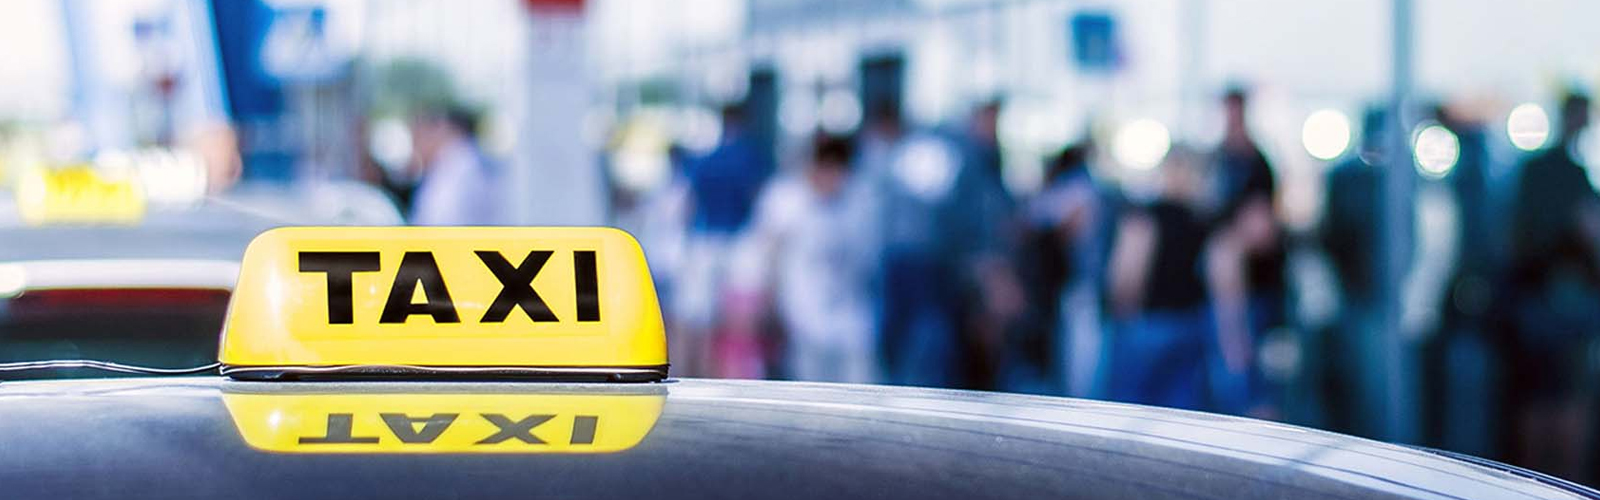 taxi in chandigarh